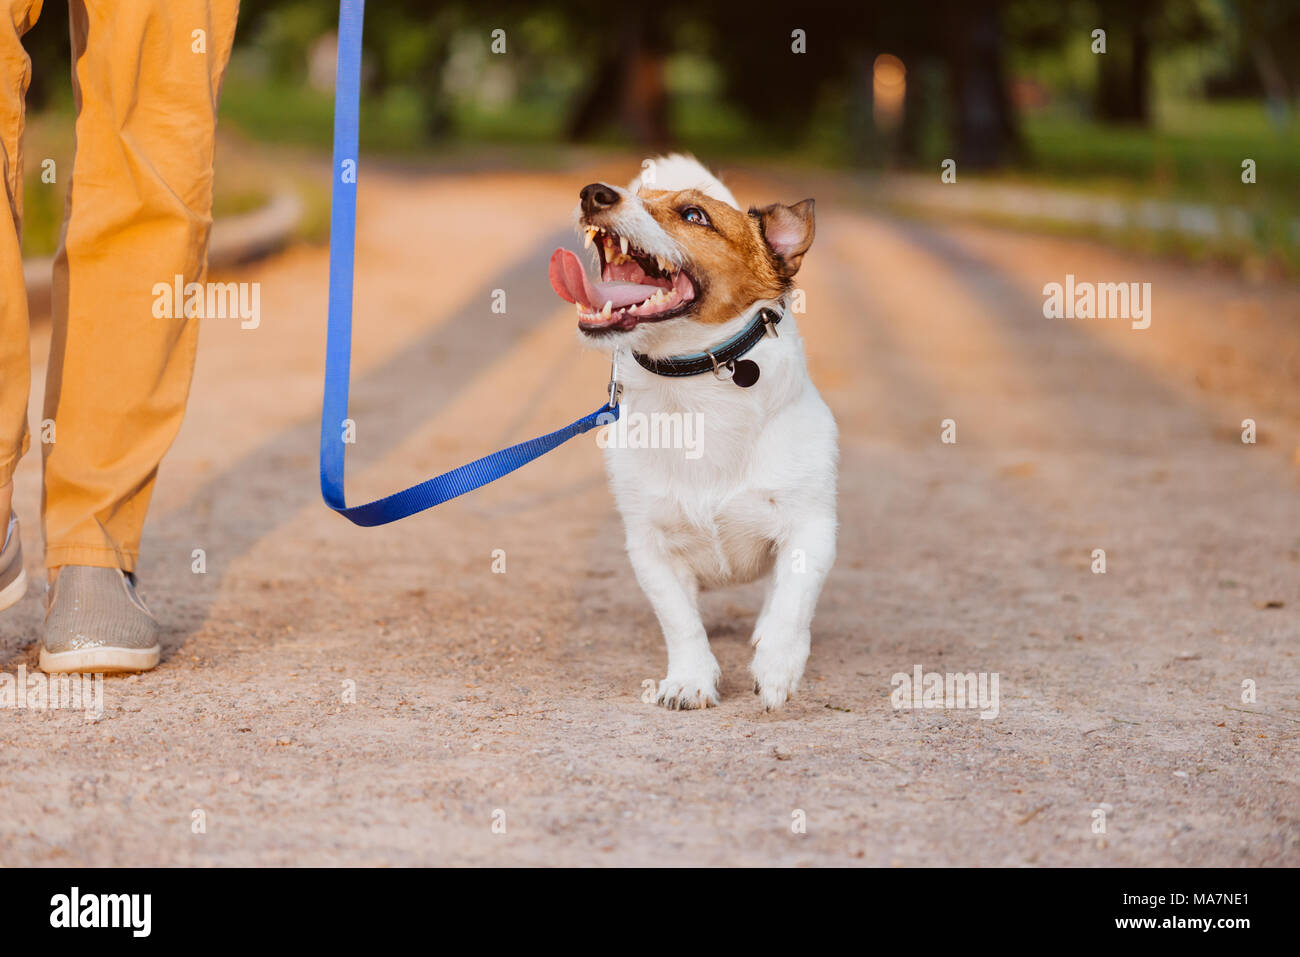 Kindly dog on leash looking up at owner walking at park - Stock Image